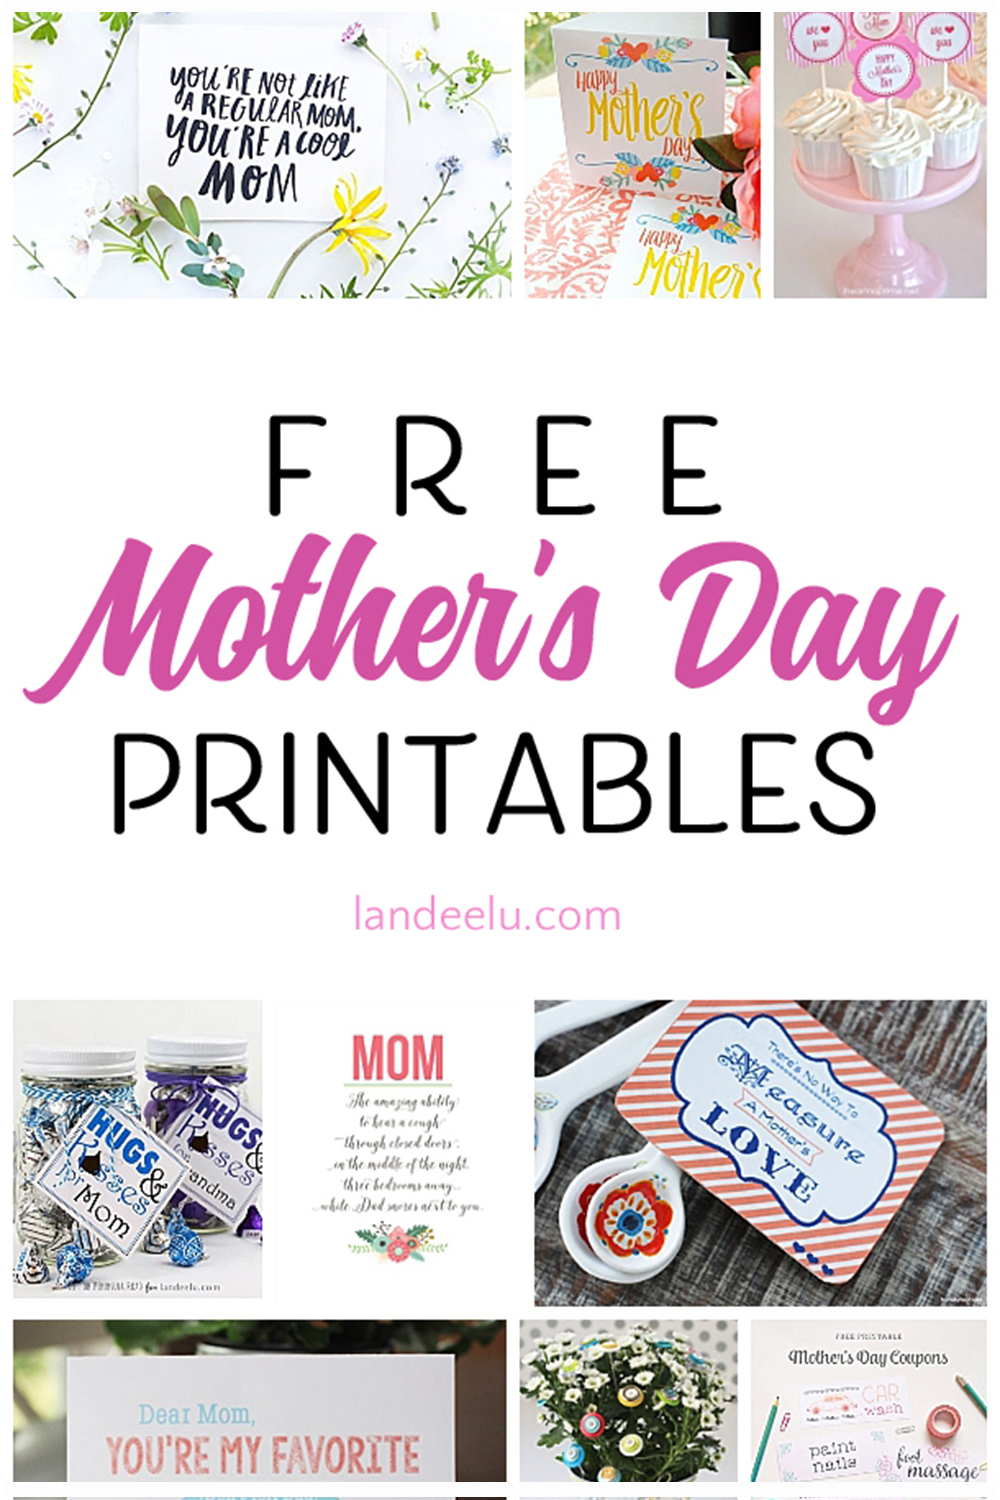 20 Free Mother's Day printables to help celebrate your mom! Tags, cards, artwork and more... all free! #mothersday #mothersdaygiftideas #mothersdaygifts #giftideas